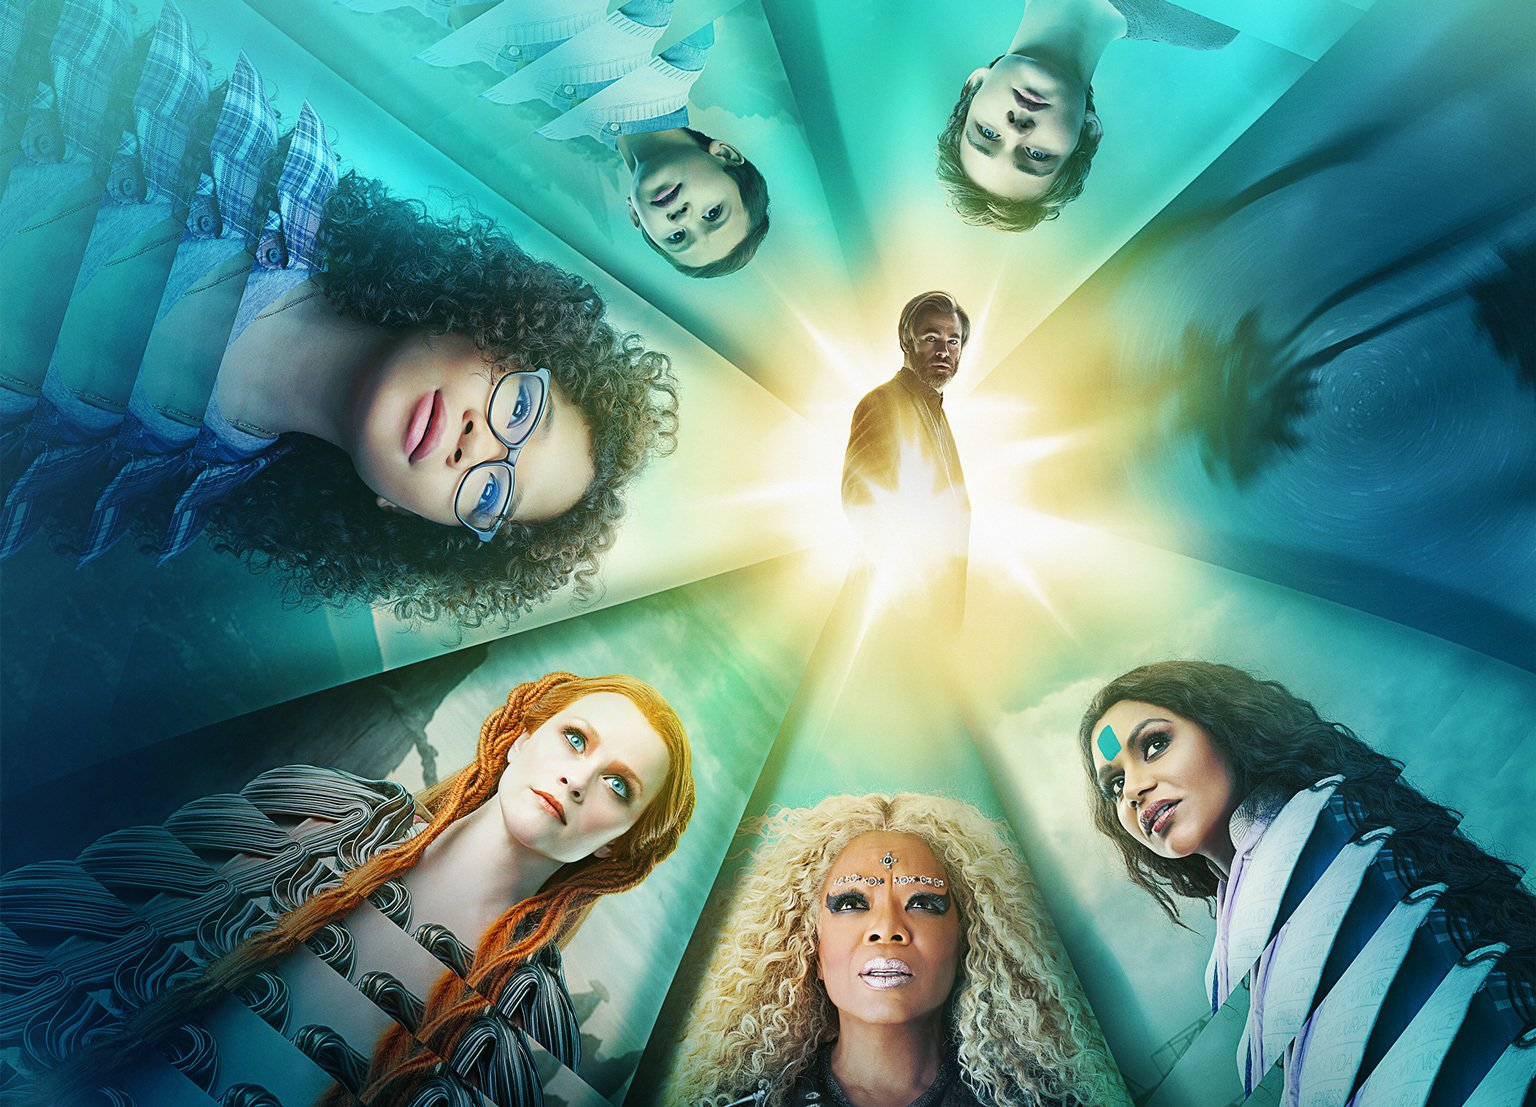 A Wrinkle in Time Director Ava DuVernay Uses Racism to Explain Away Bad Reviews